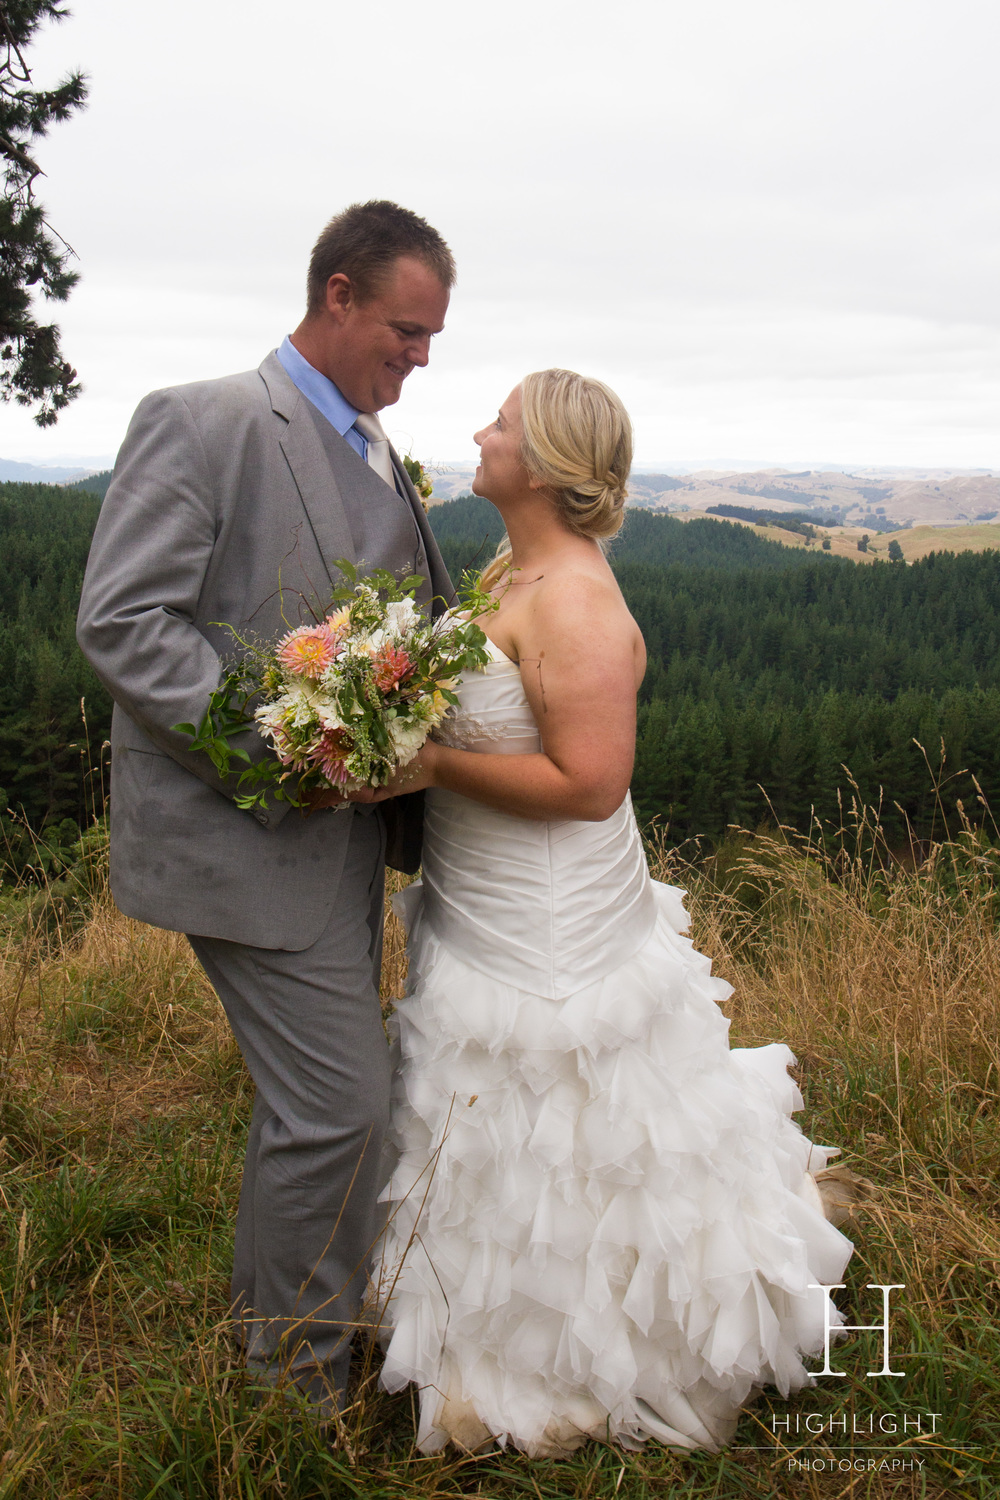 highlight_photography_wedding_new_zealand_beachkiss.jpg